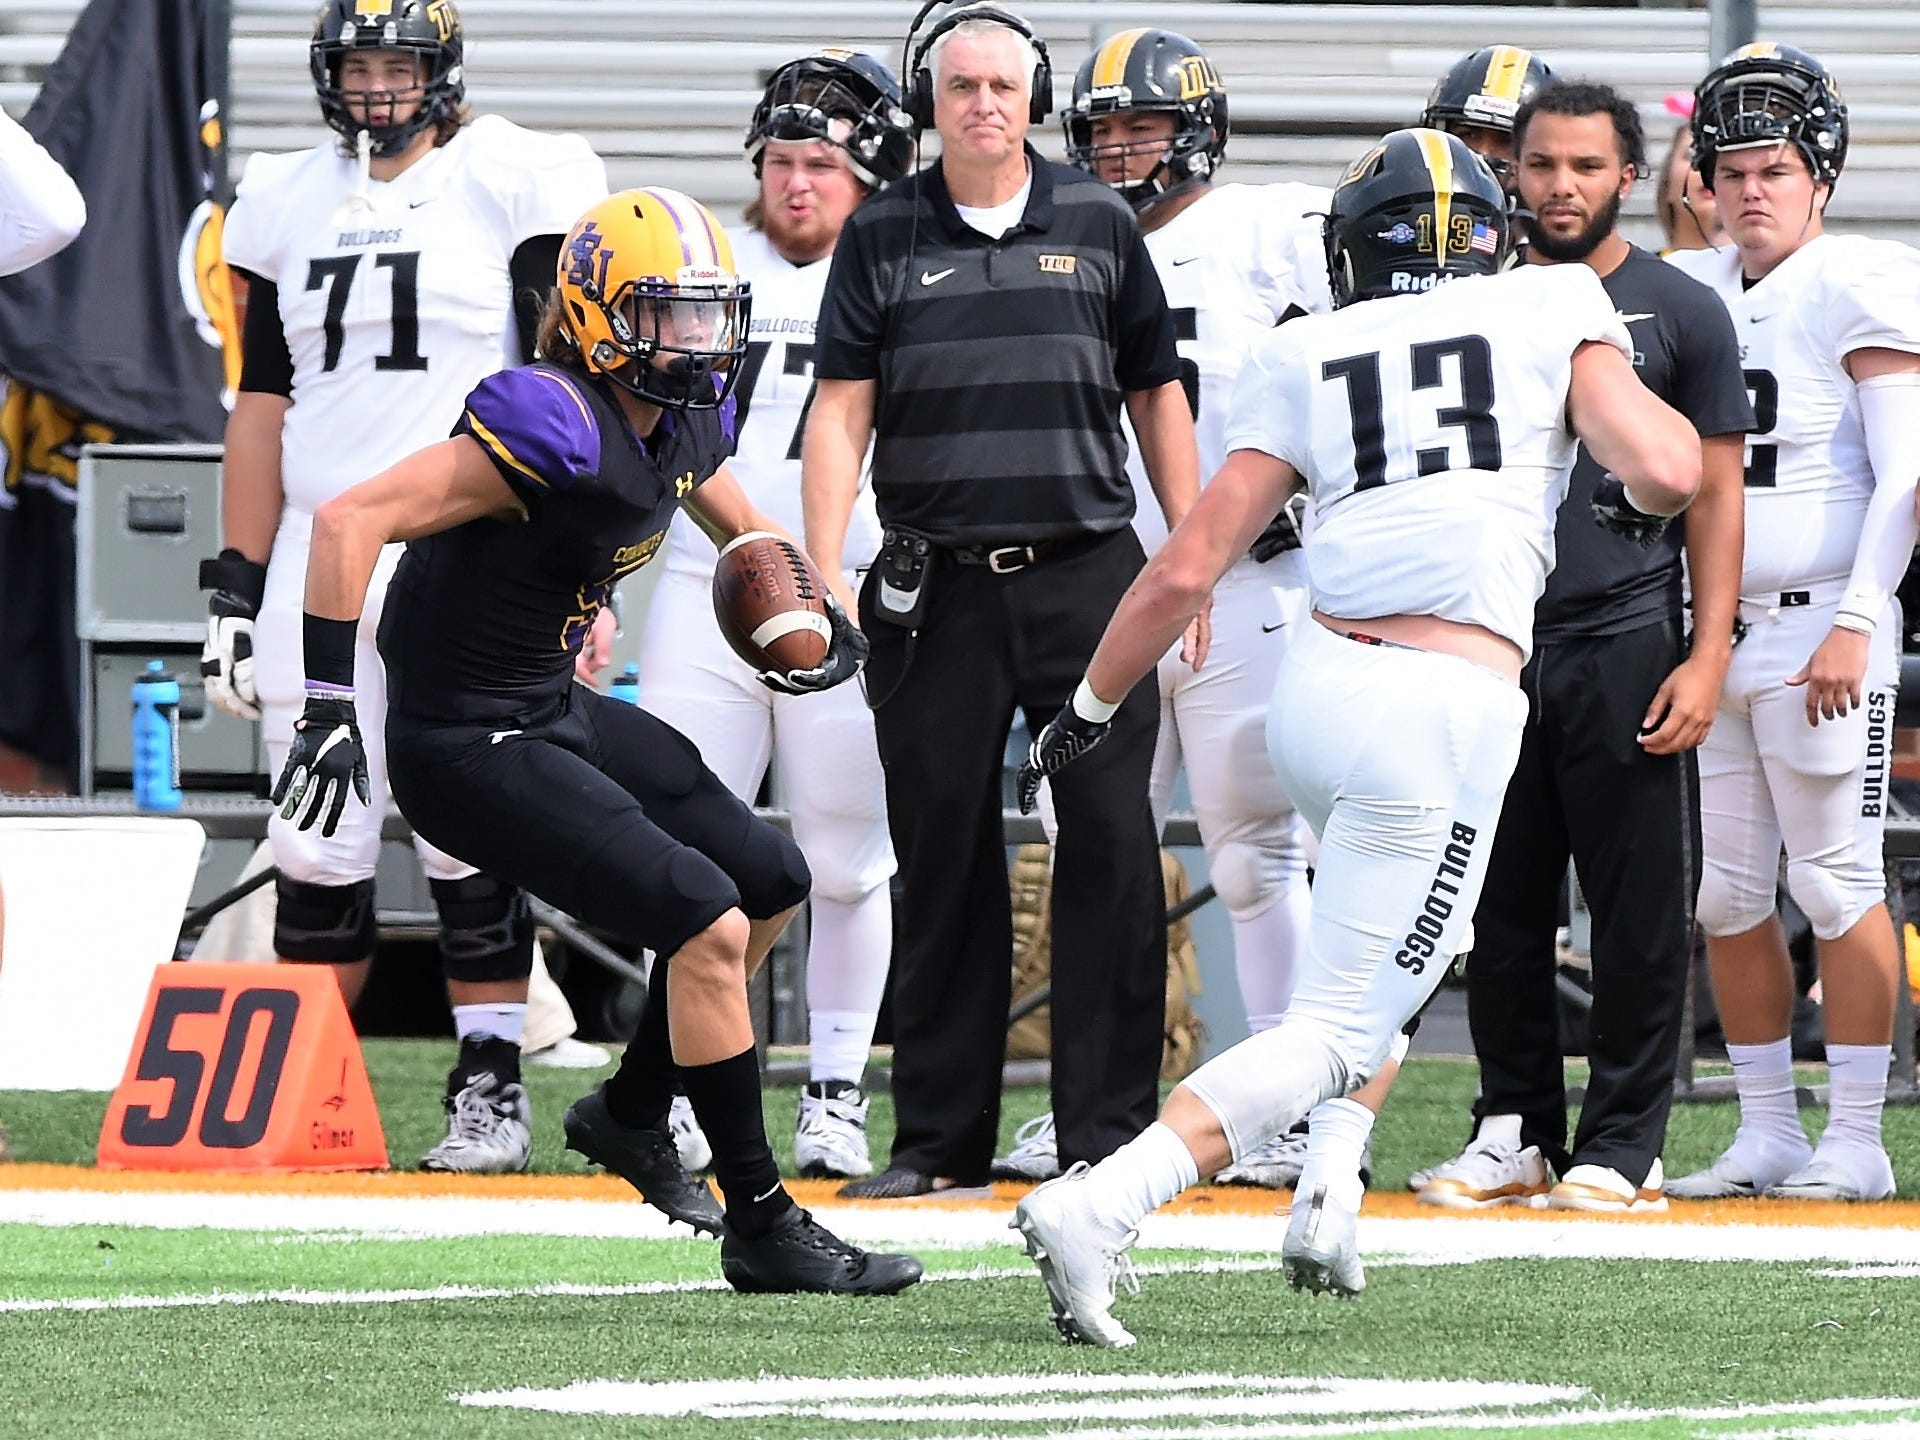 Hardin-Simmons receiver Reese Childress (5) makes a move after a catch against Texas Lutheran at Shelton Stadium on Saturday, Oct. 20, 2018.